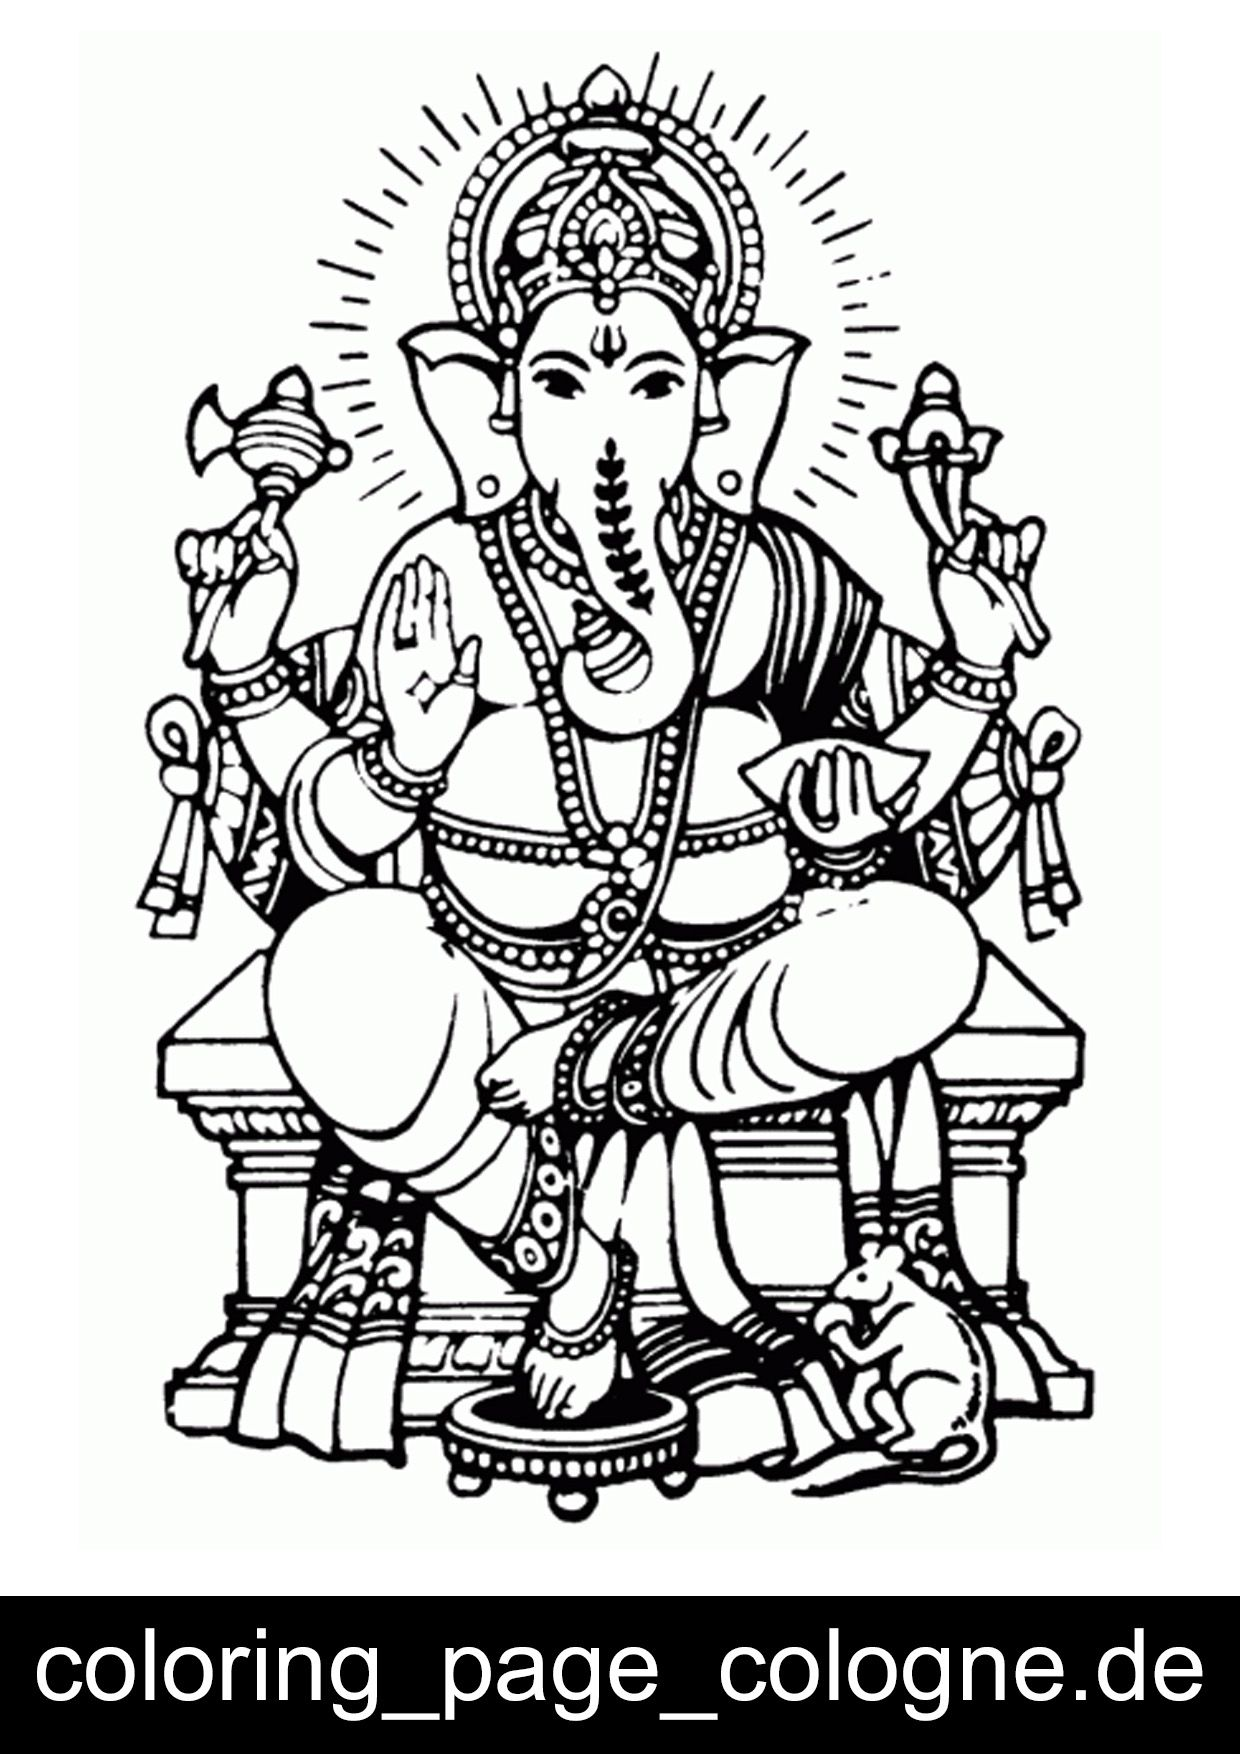 coloring page ganesha | Coloring | Pinterest | Ganesha and Je suis ...